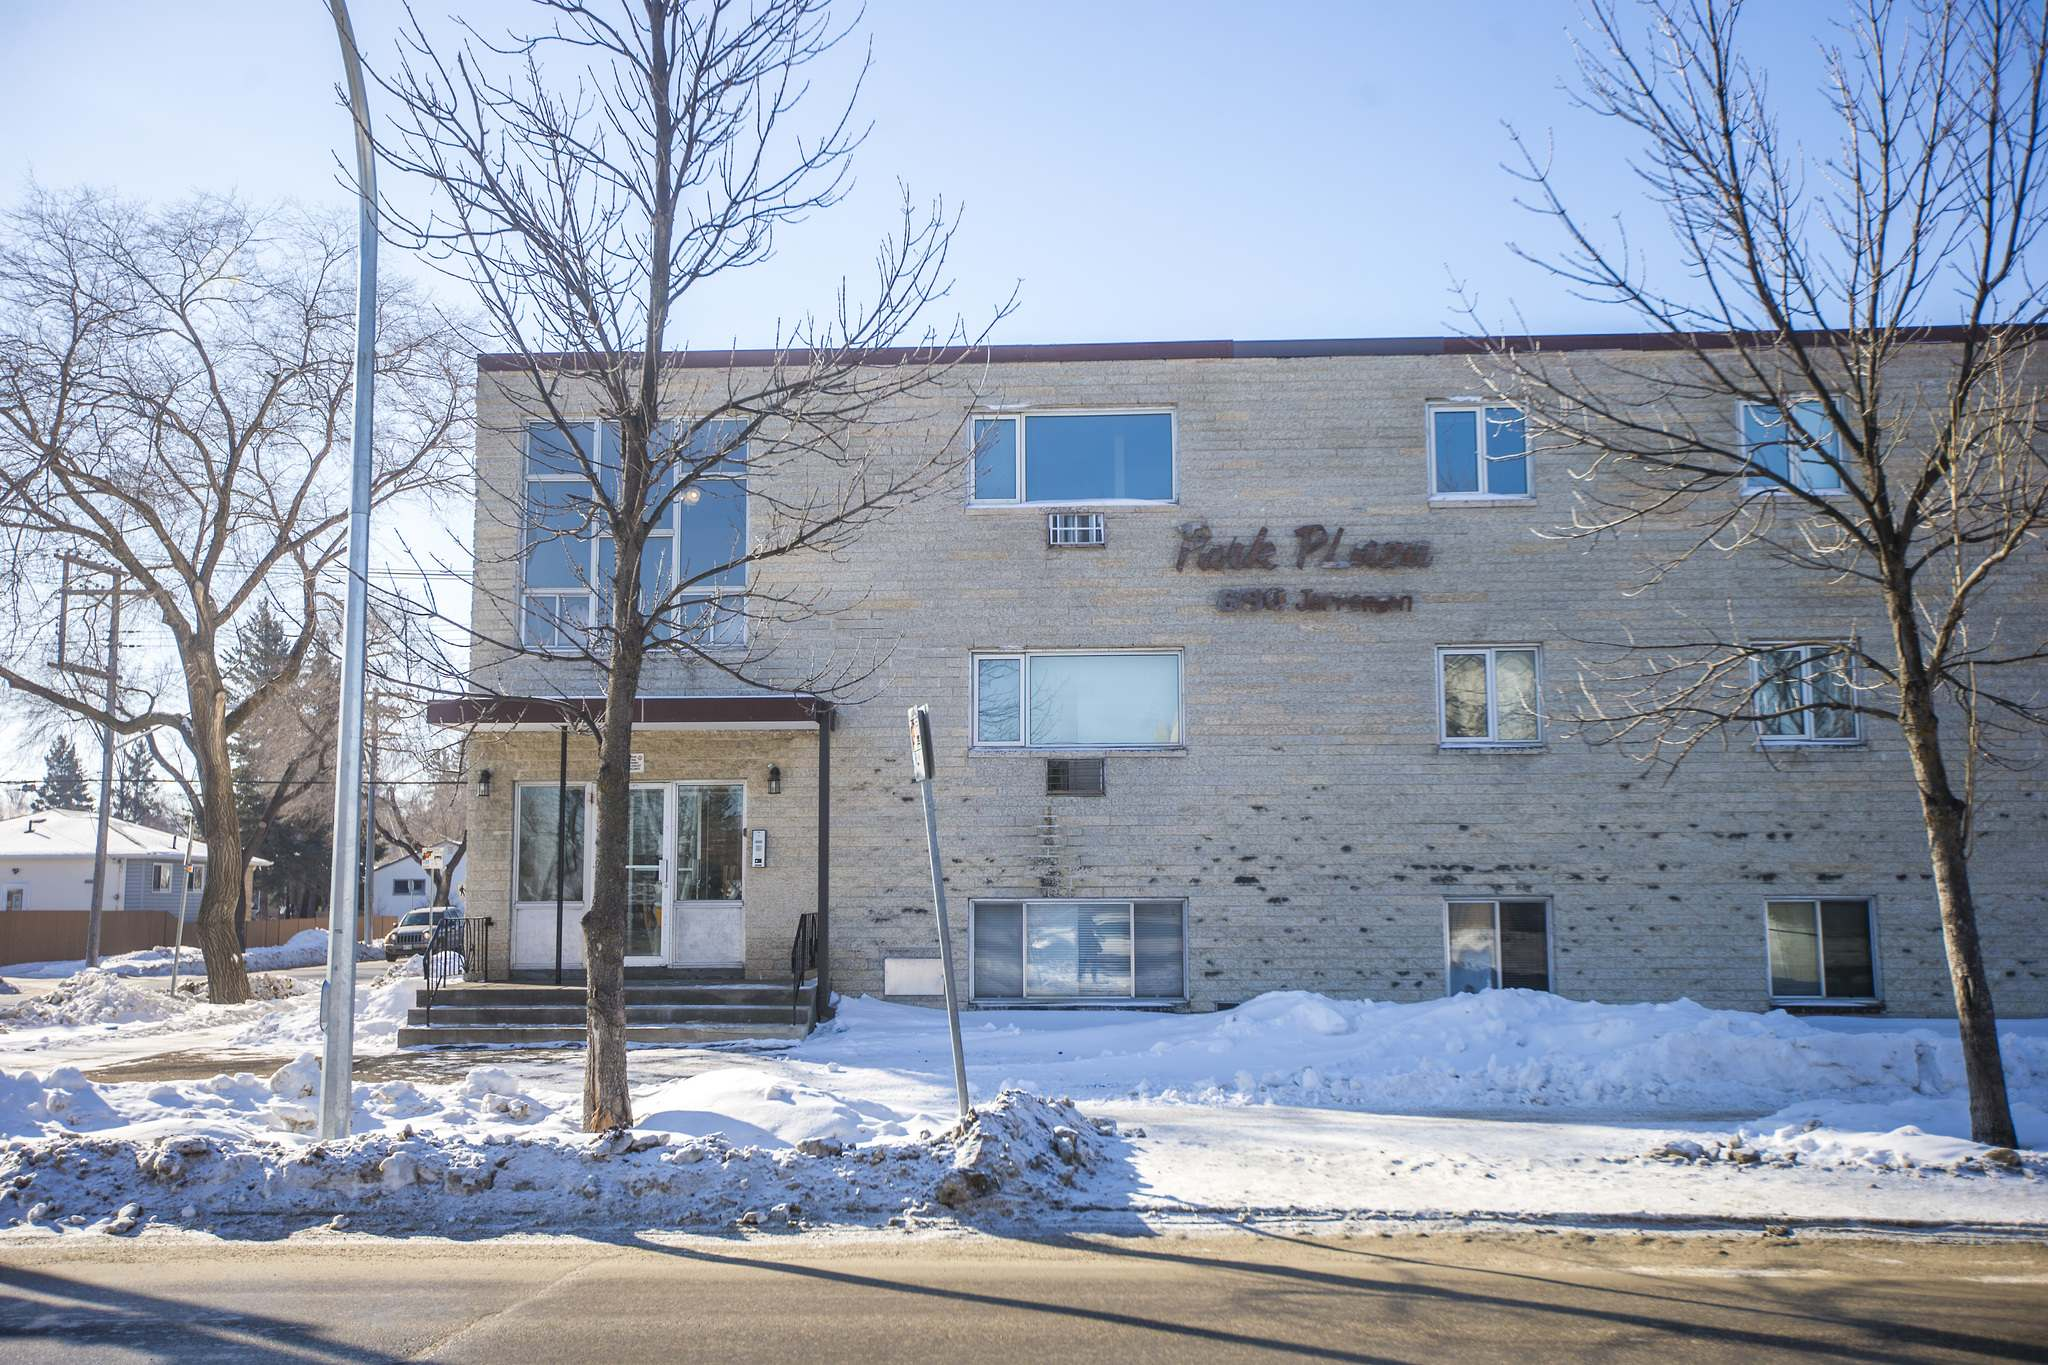 MIKAELA MACKENZIE / WINNIPEG FREE PRESS</p><p>Park Plaza Apartments were purchased by new investors who told tenants rents would nearly double to pay for future renovations and that leases would not be renewed when they expired.</p></p>